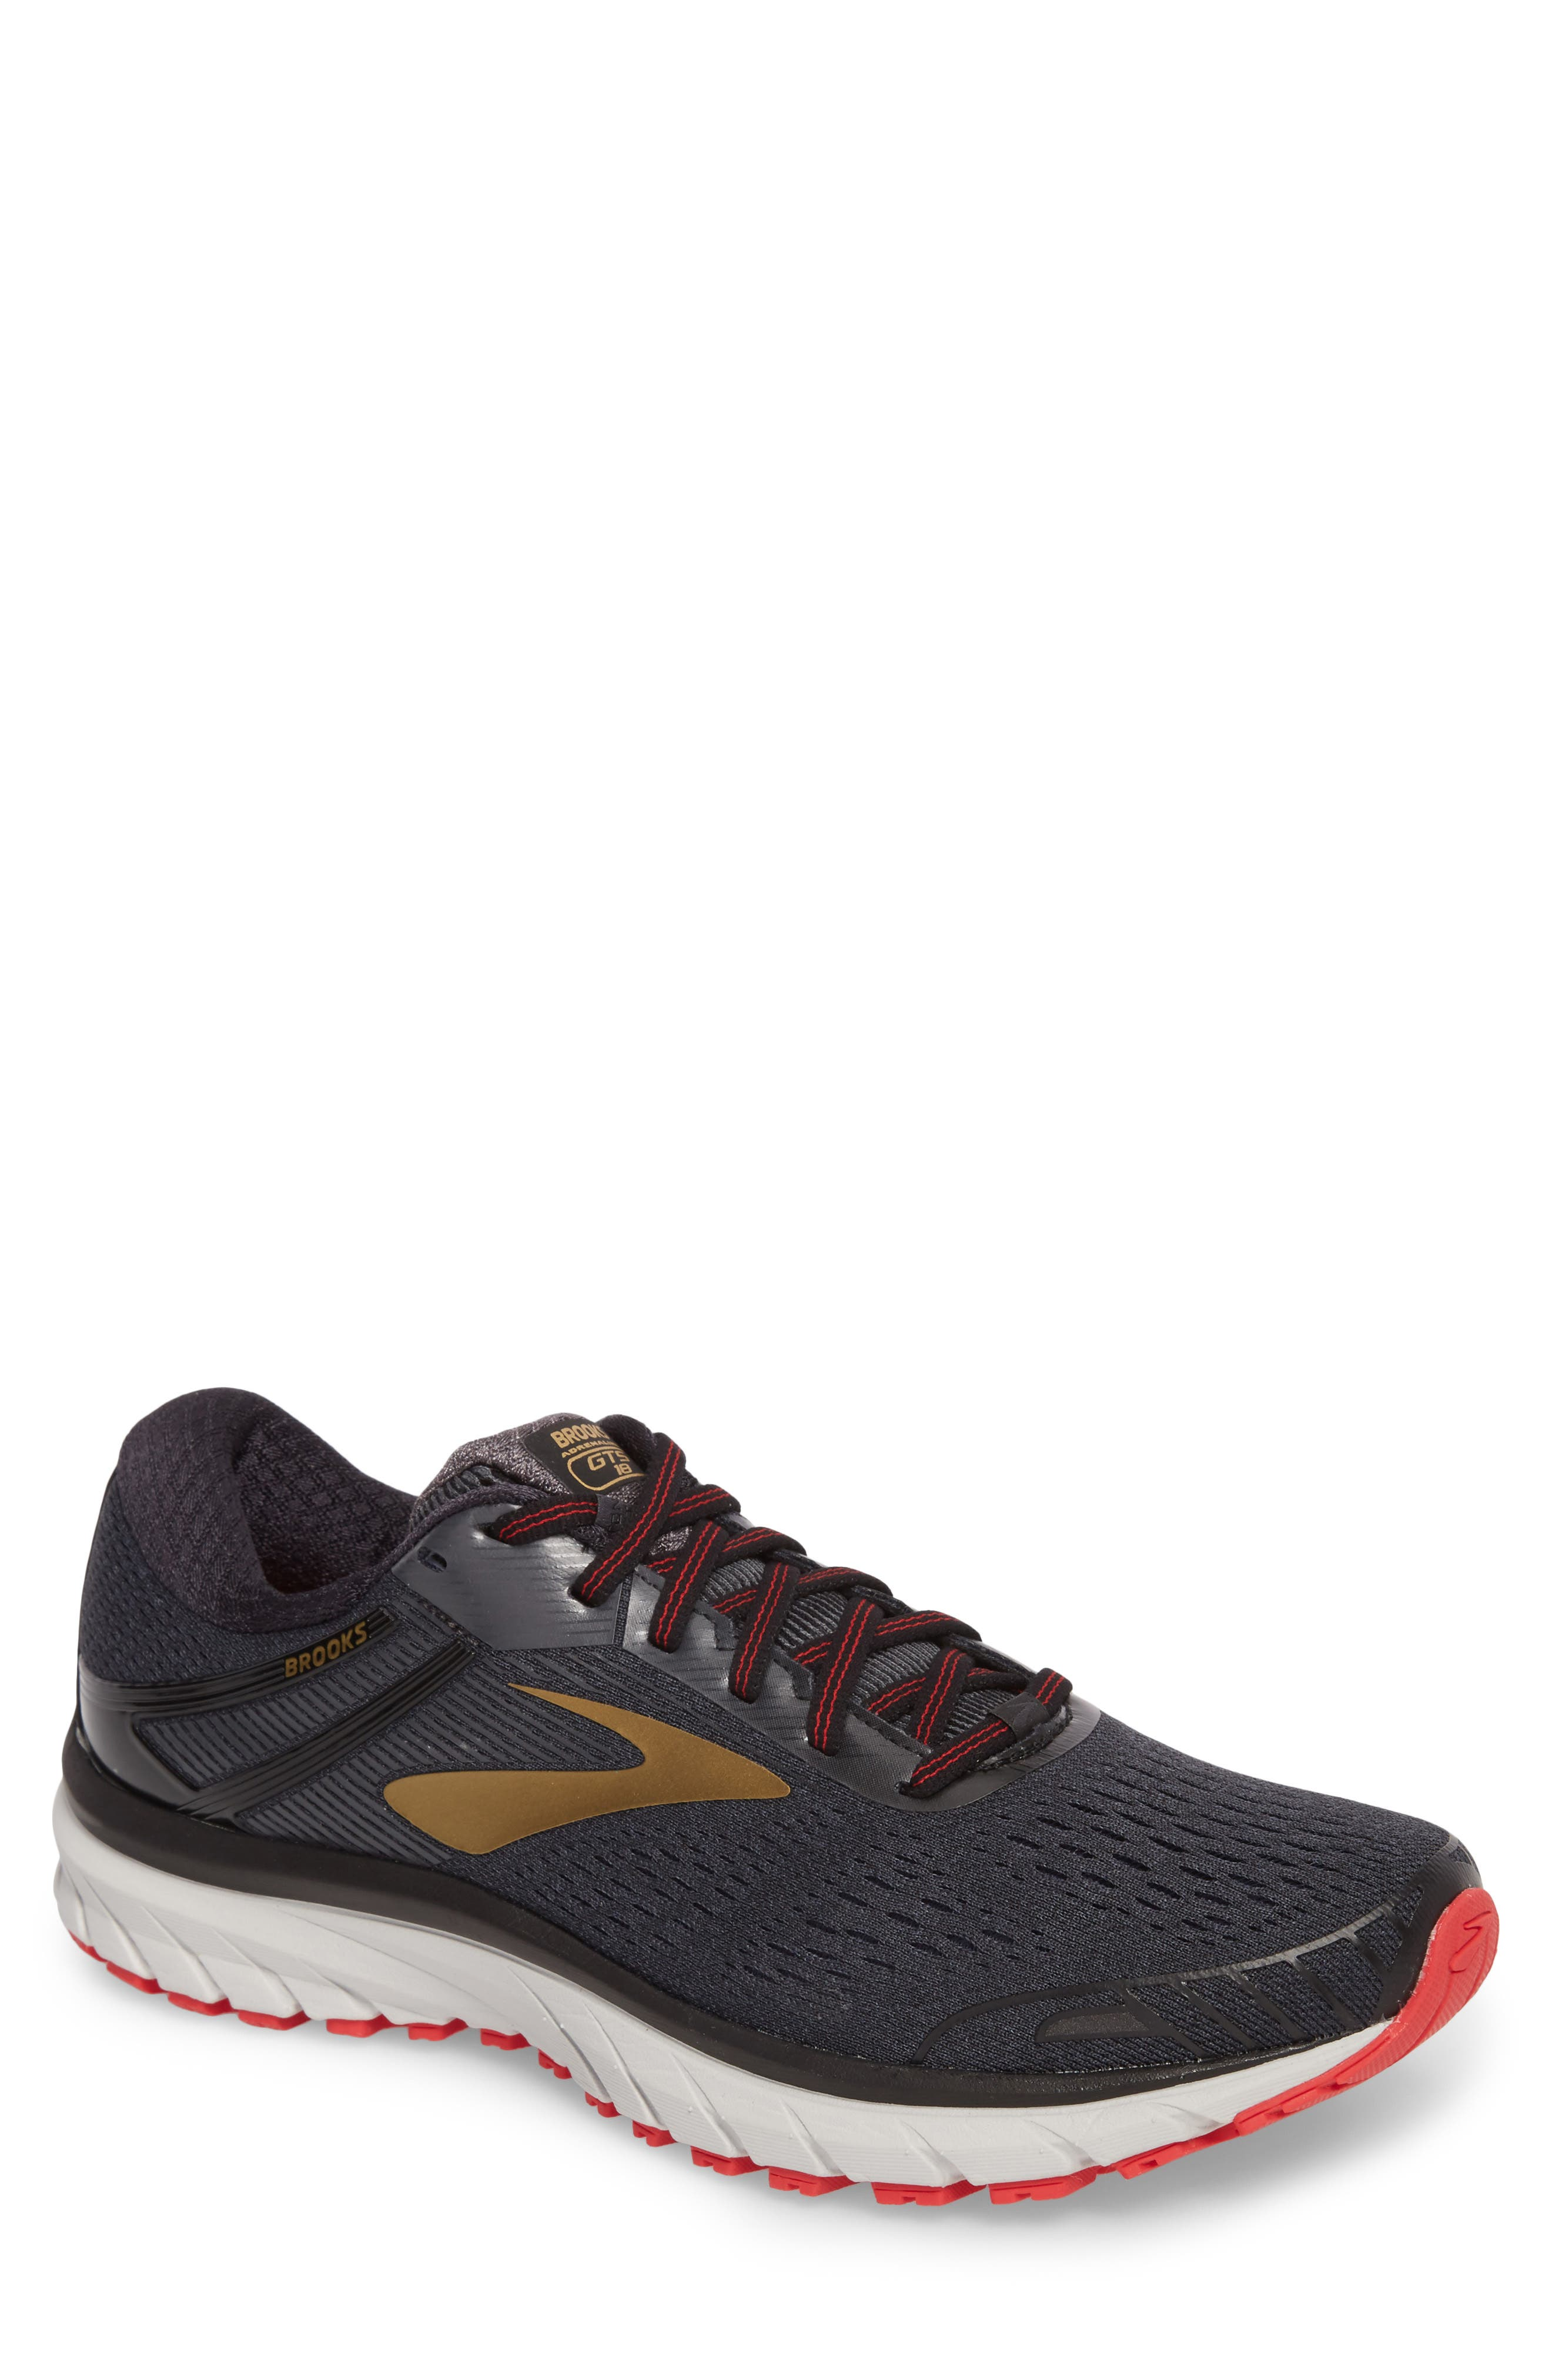 Adrenaline GTS 18 Running Shoe,                         Main,                         color, BLACK/ GOLD/ RED